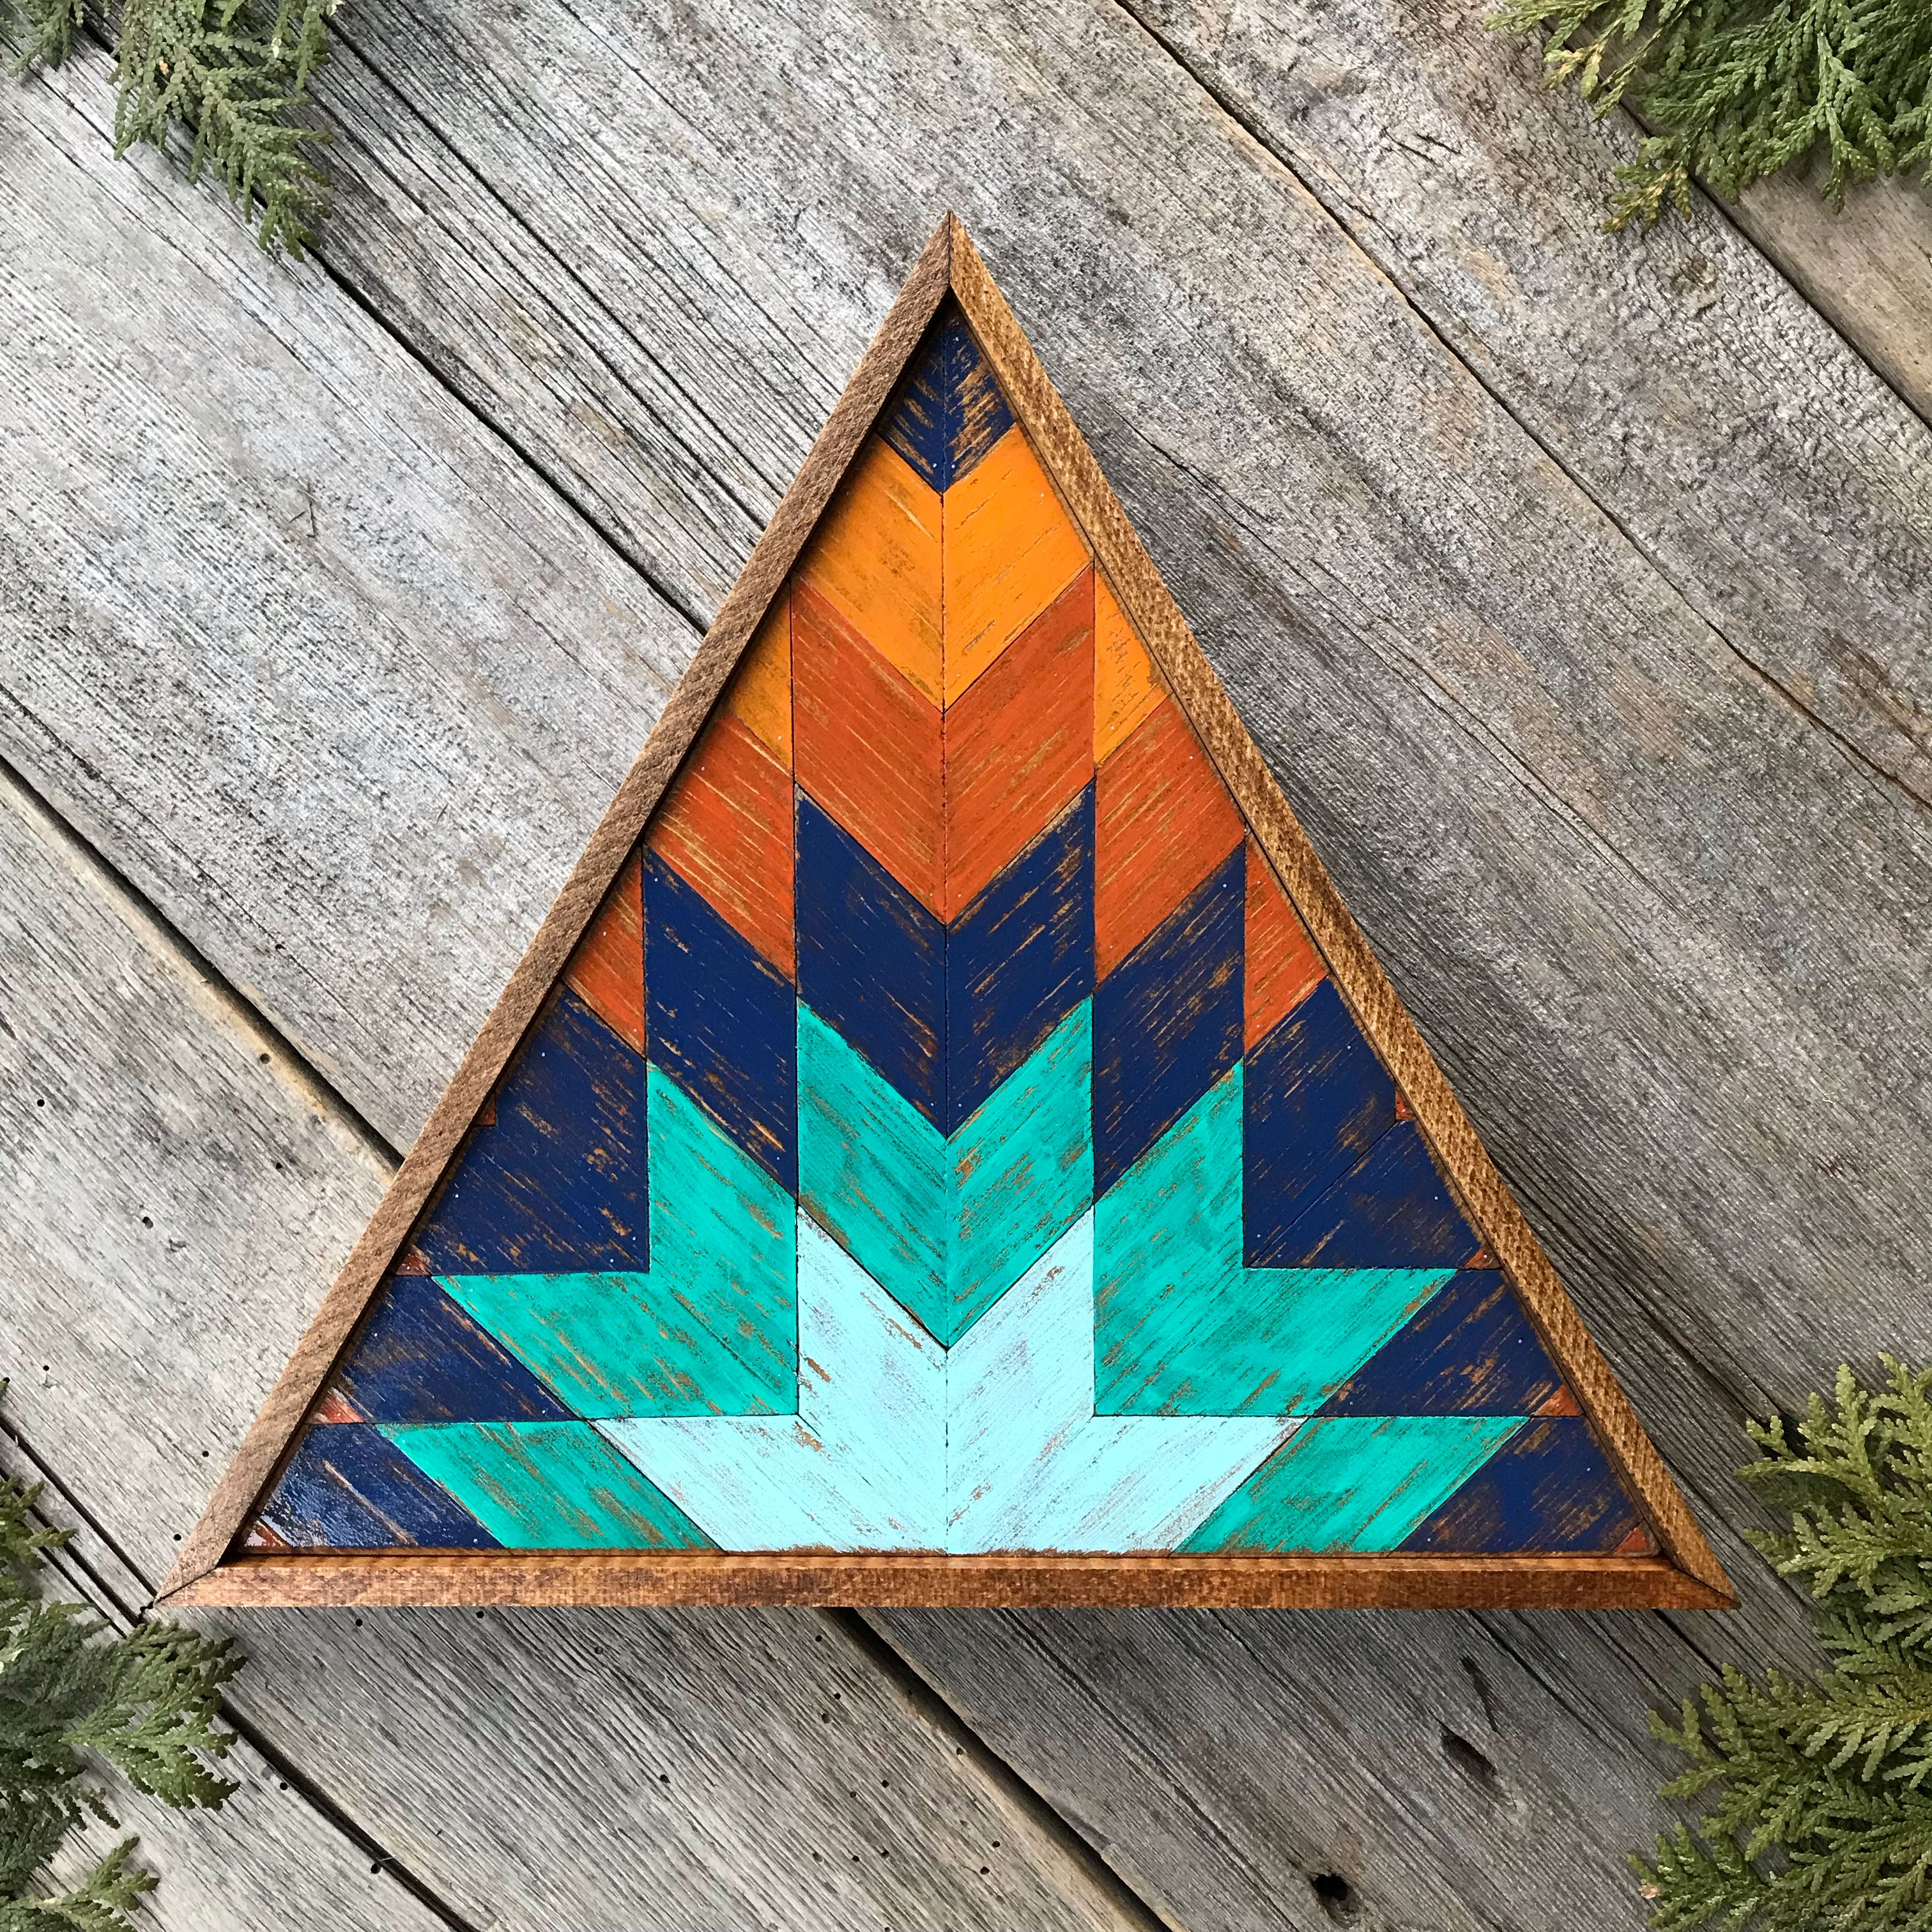 Handcrafted Triangle Wood Wall Art Featuring A Southwestern Style Geometric Pattern Easily Add Charm In 2020 Southwestern Wall Decor Wood Wall Art Wooden Wall Decor